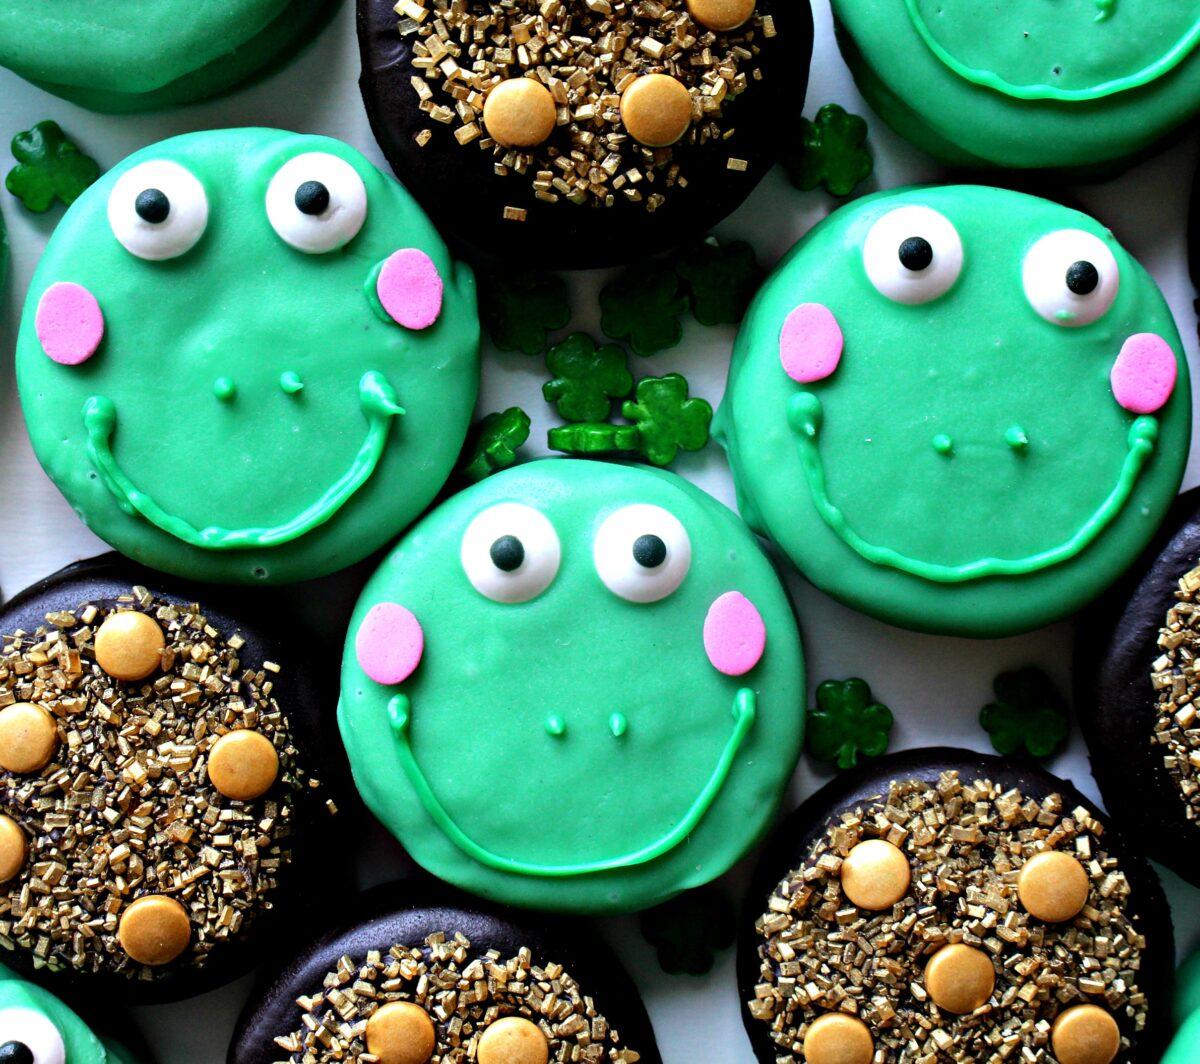 Closeup of green coated cookies decorated like frogs.